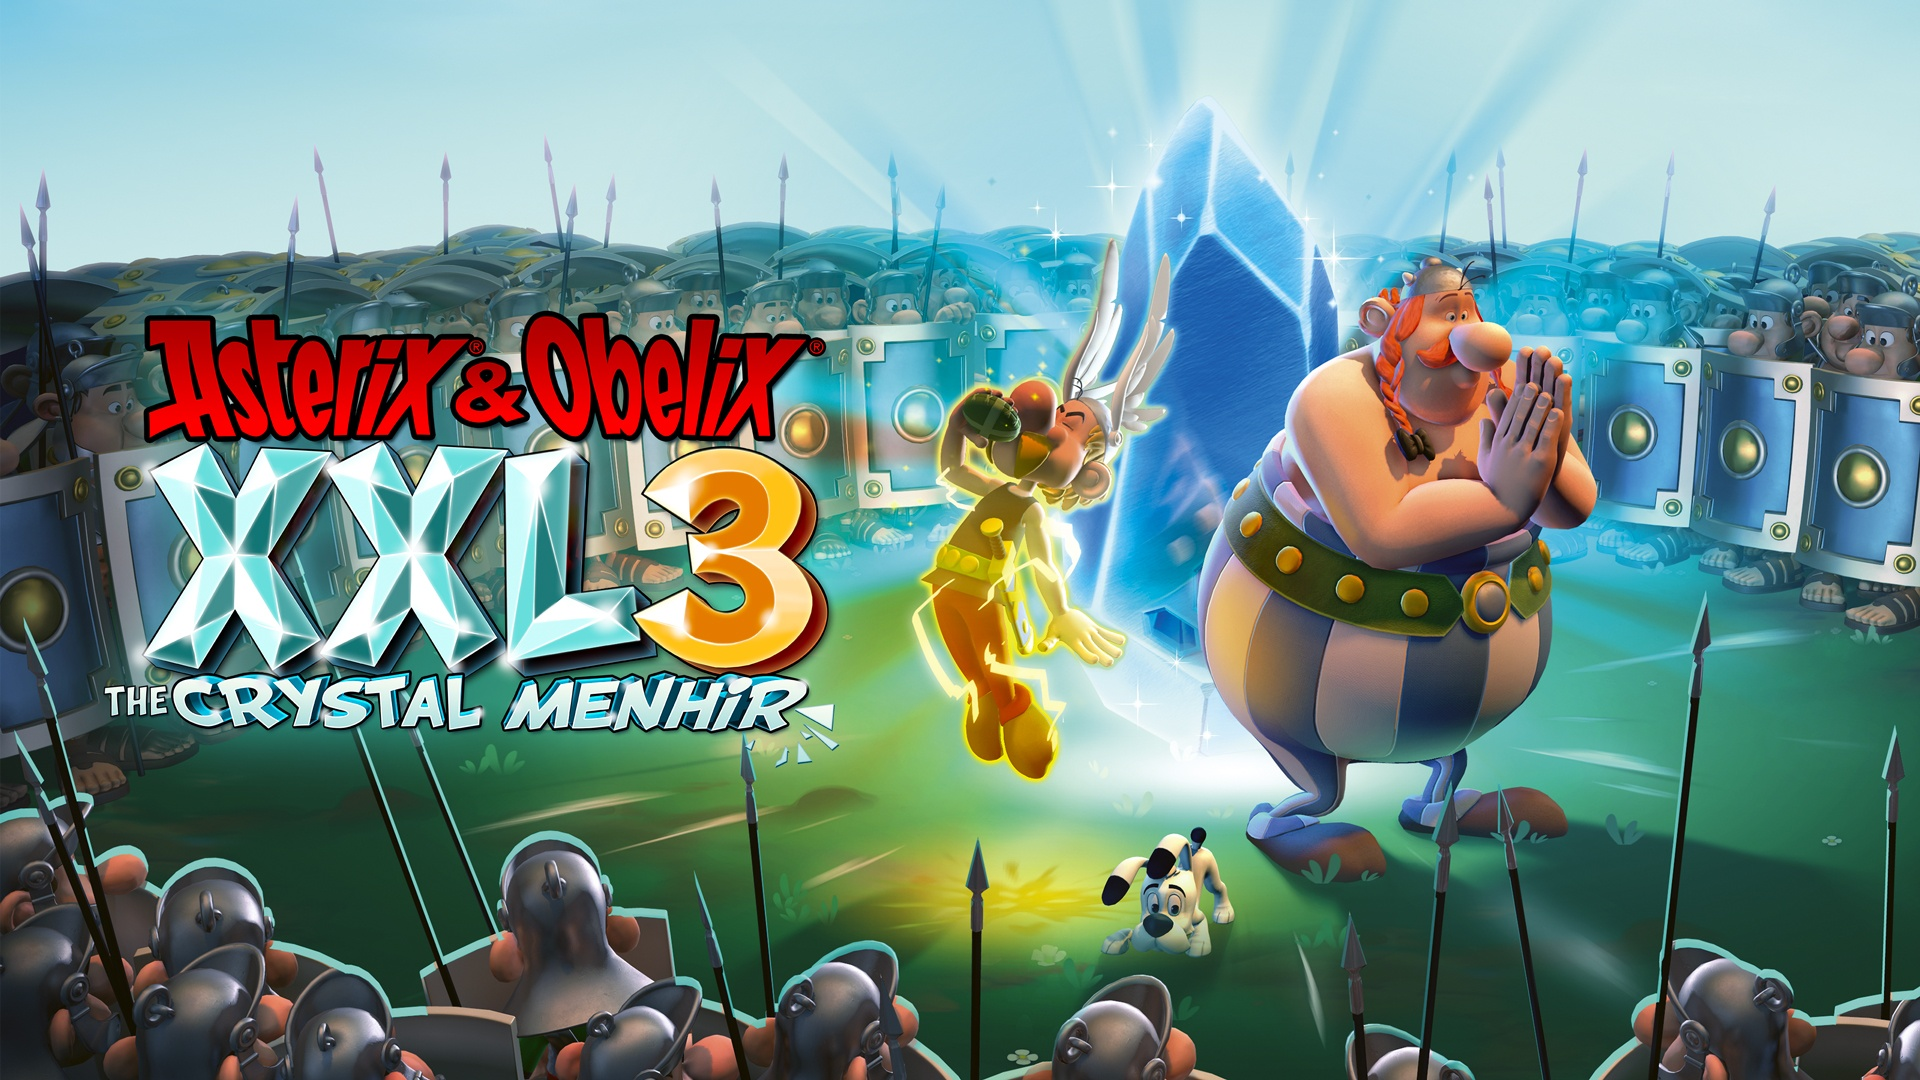 Asterix & Obelix XXL 3 - The Crystal Menhir [Switch Review]